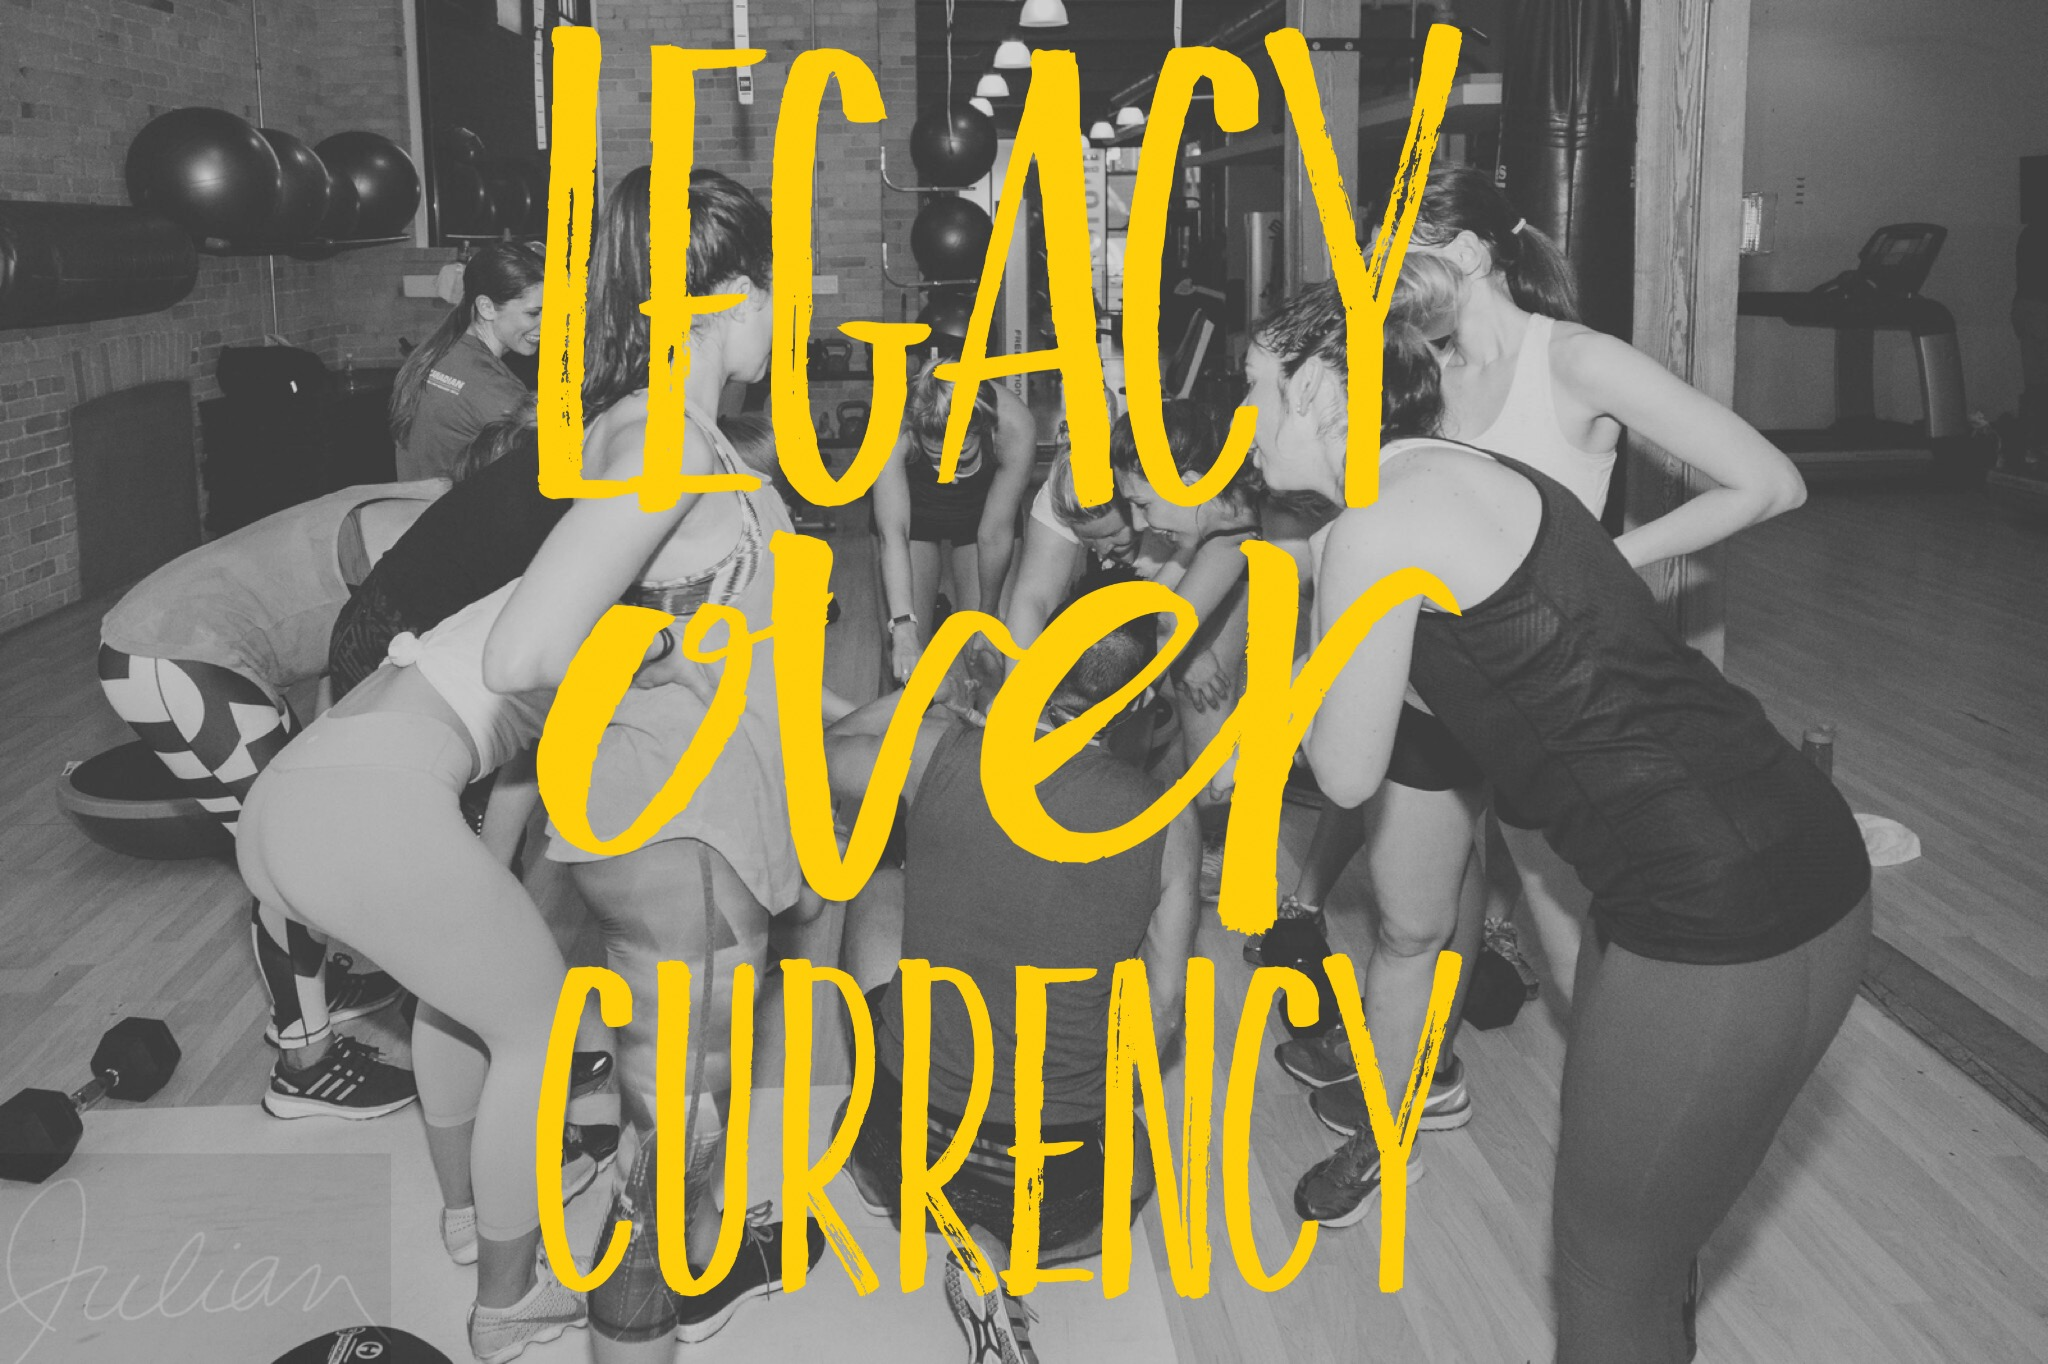 LEGACY OVER CURRENCY   A legacy is built upon enlightened action: living what you love without compromise, leading by example without expectation, and leaving an impact without words. No money can match the memories you make. Take stock of the stories you author, and write the book you've always dreamt of reading.